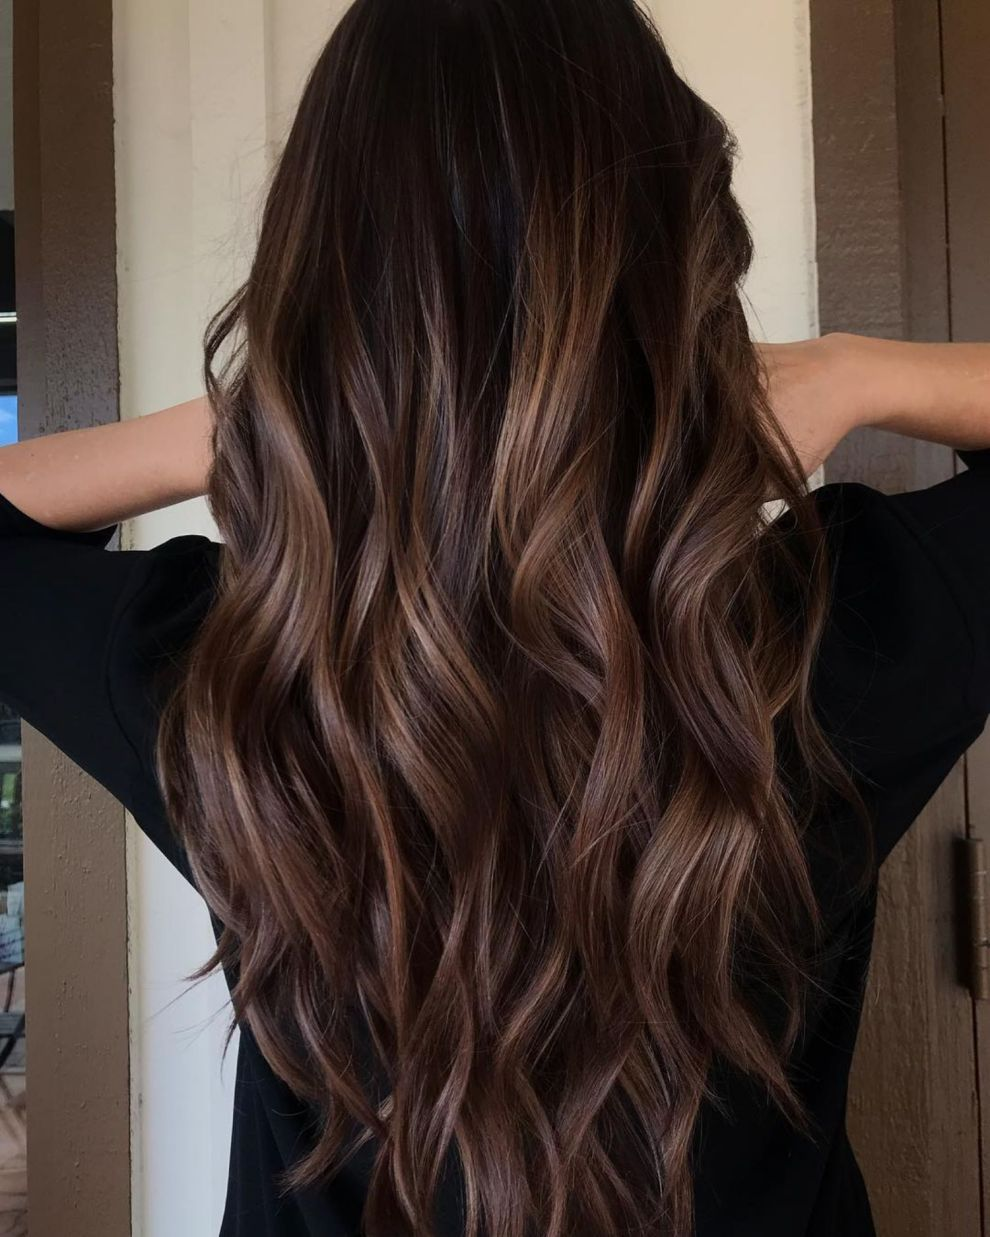 60 Chocolate Brown Hair Color Ideas For Brunettes In 2020 Long Brunette Hair Brown Hair With Highlights Brown Blonde Hair